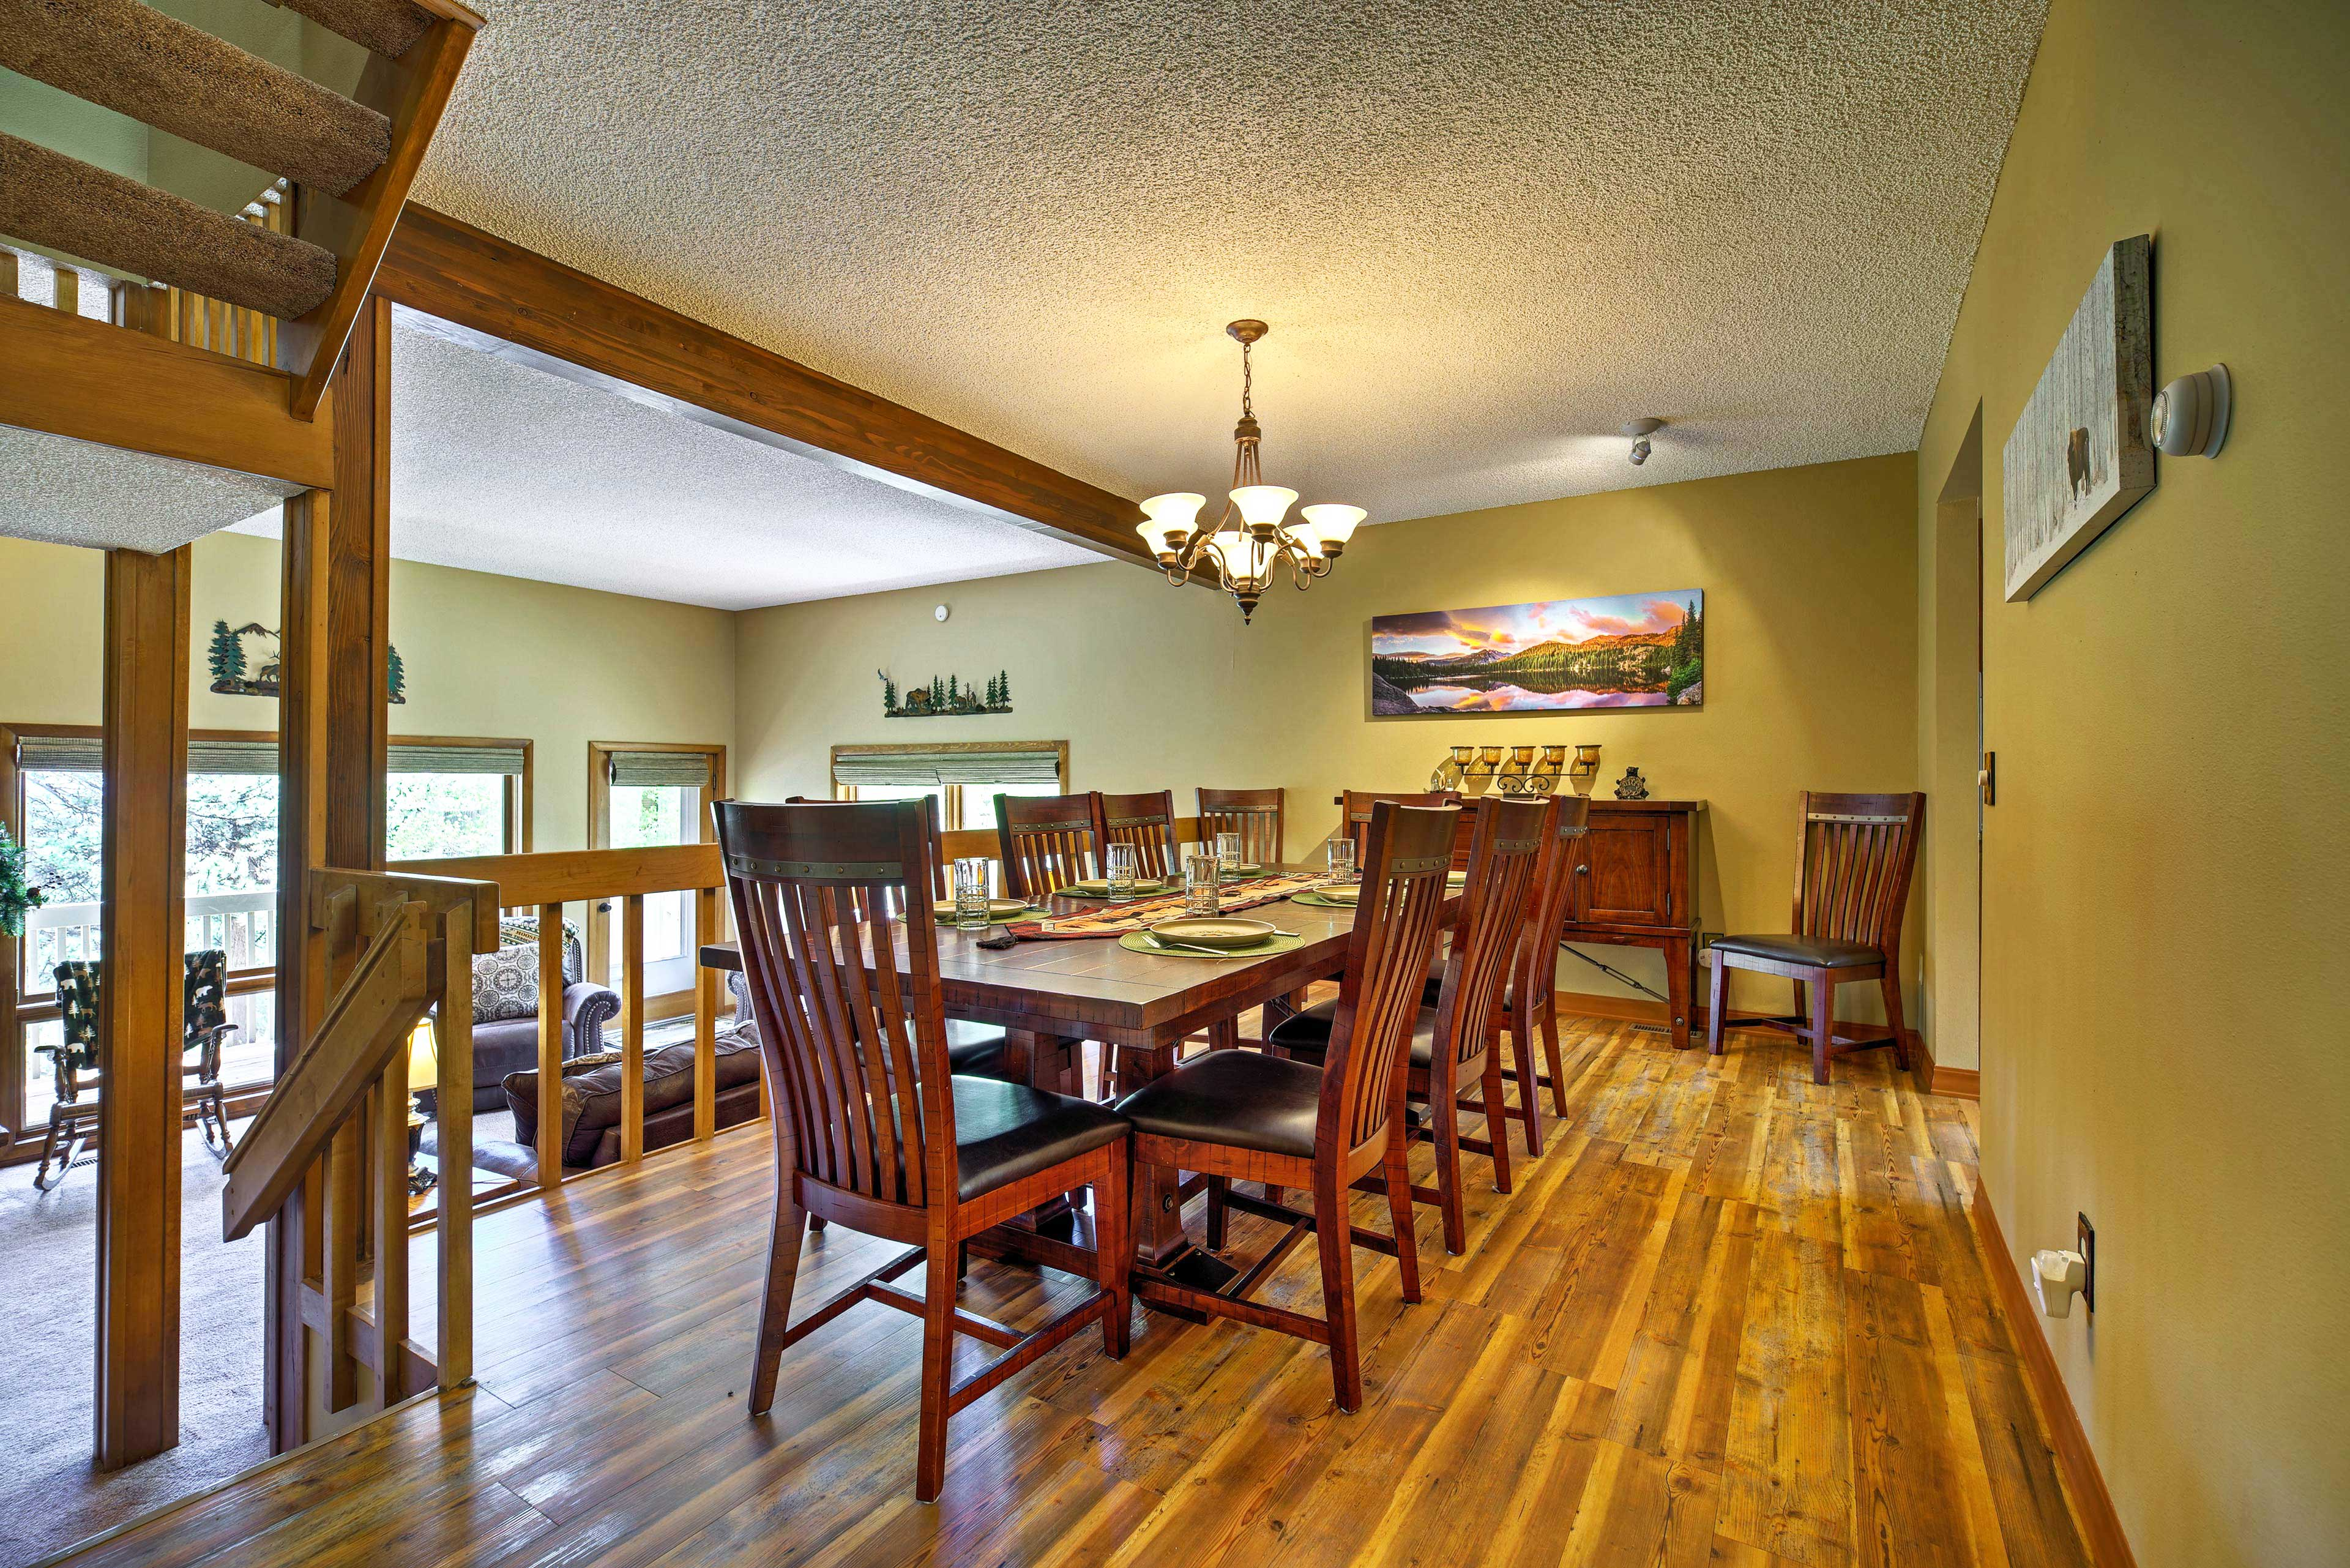 The 10-person dining table is ideal for holiday meals.